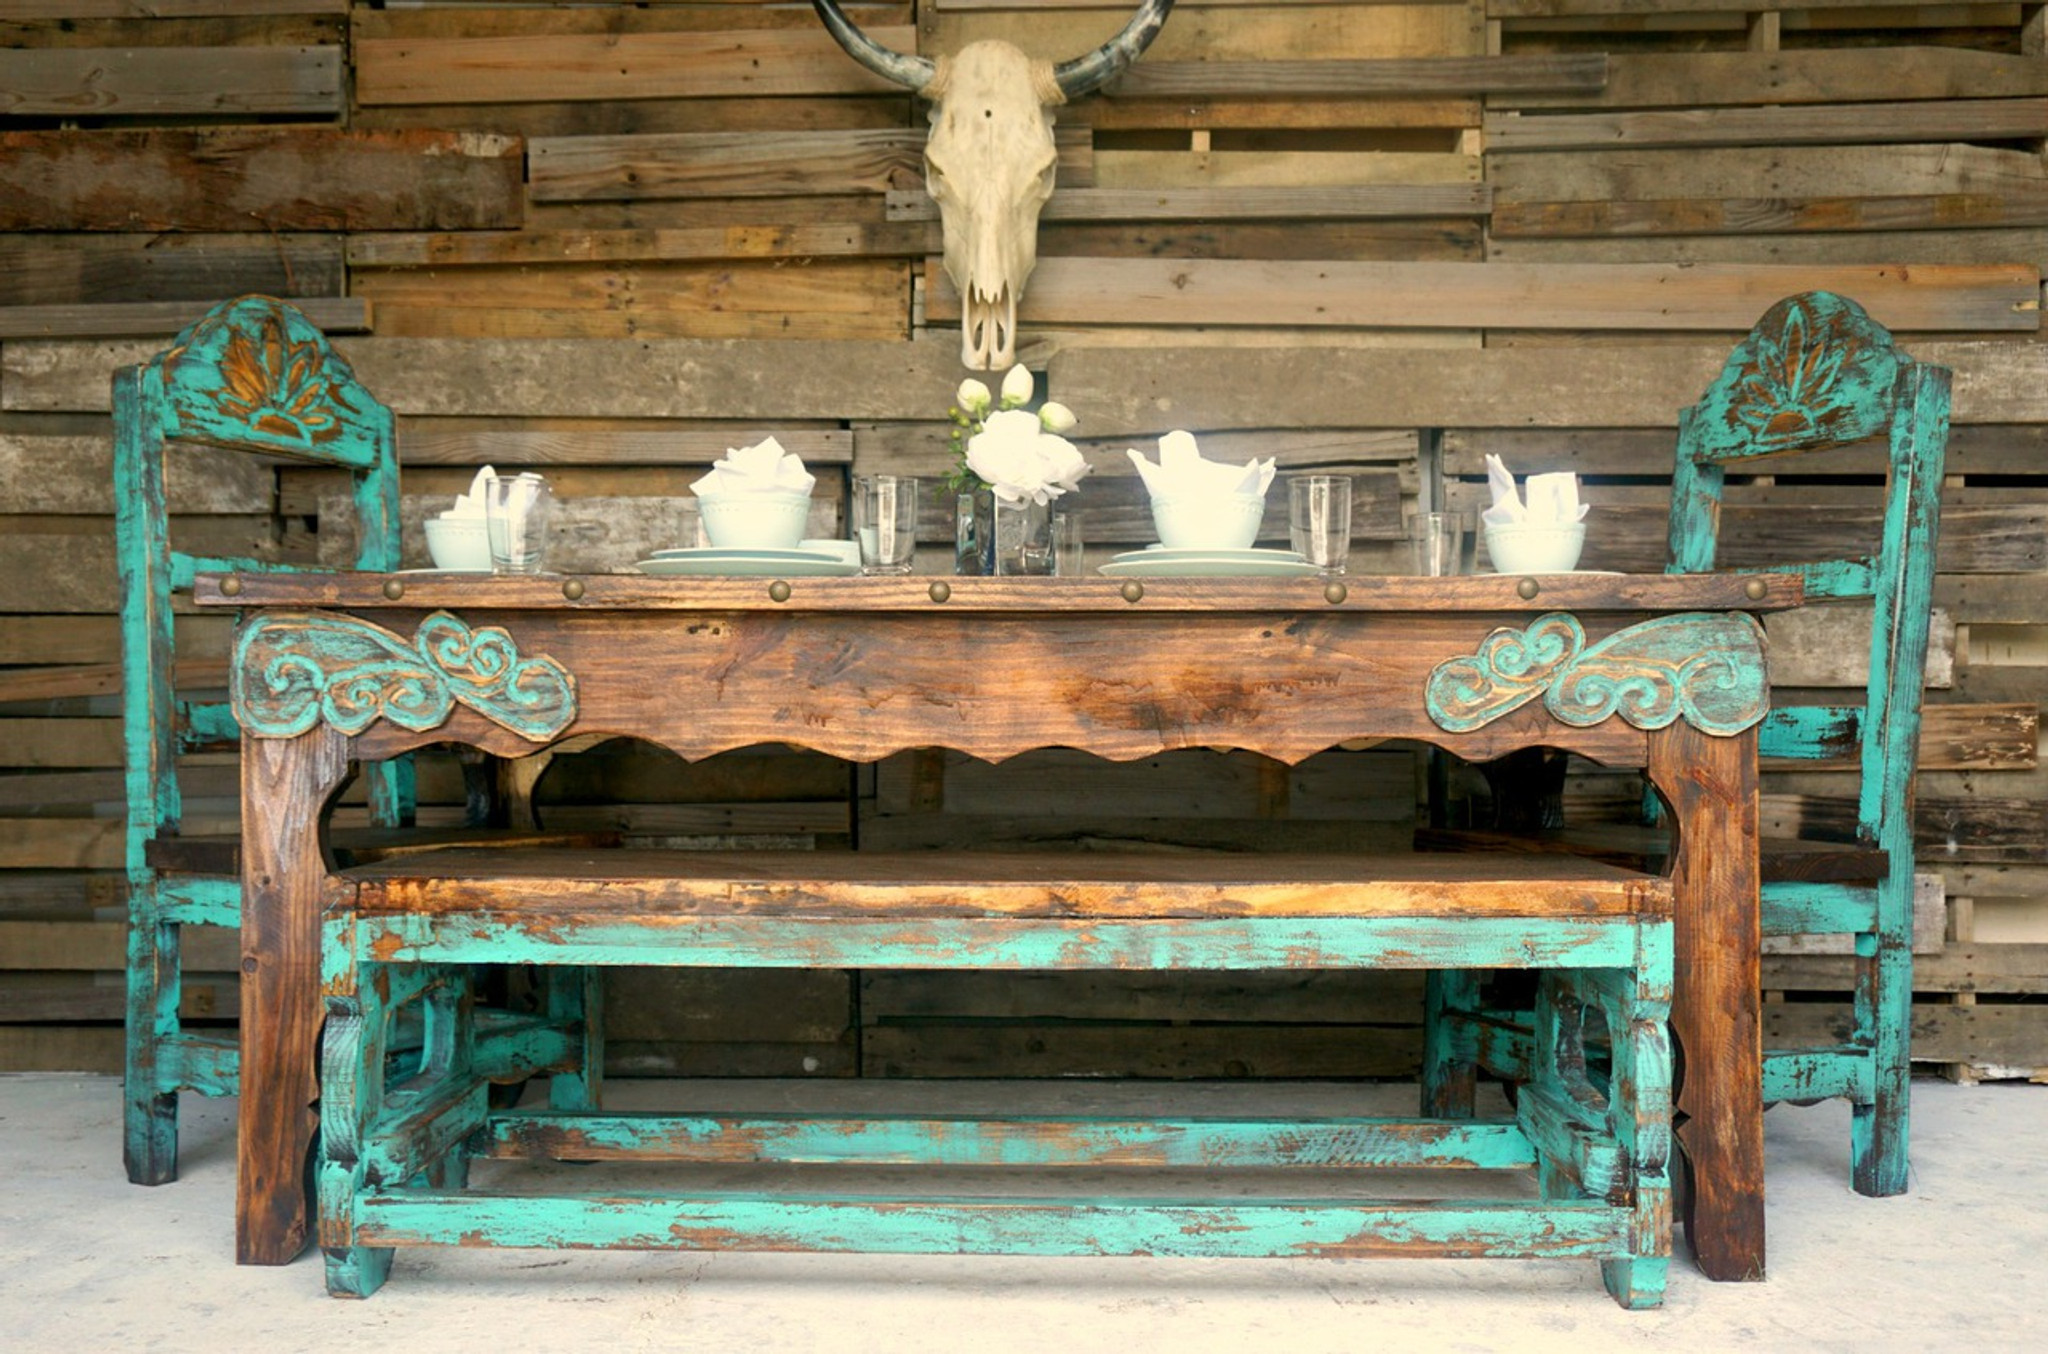 tree ideas and bb best rustic images furniture bench bc haba salvaged projects hall pallet entrance pinterest a on